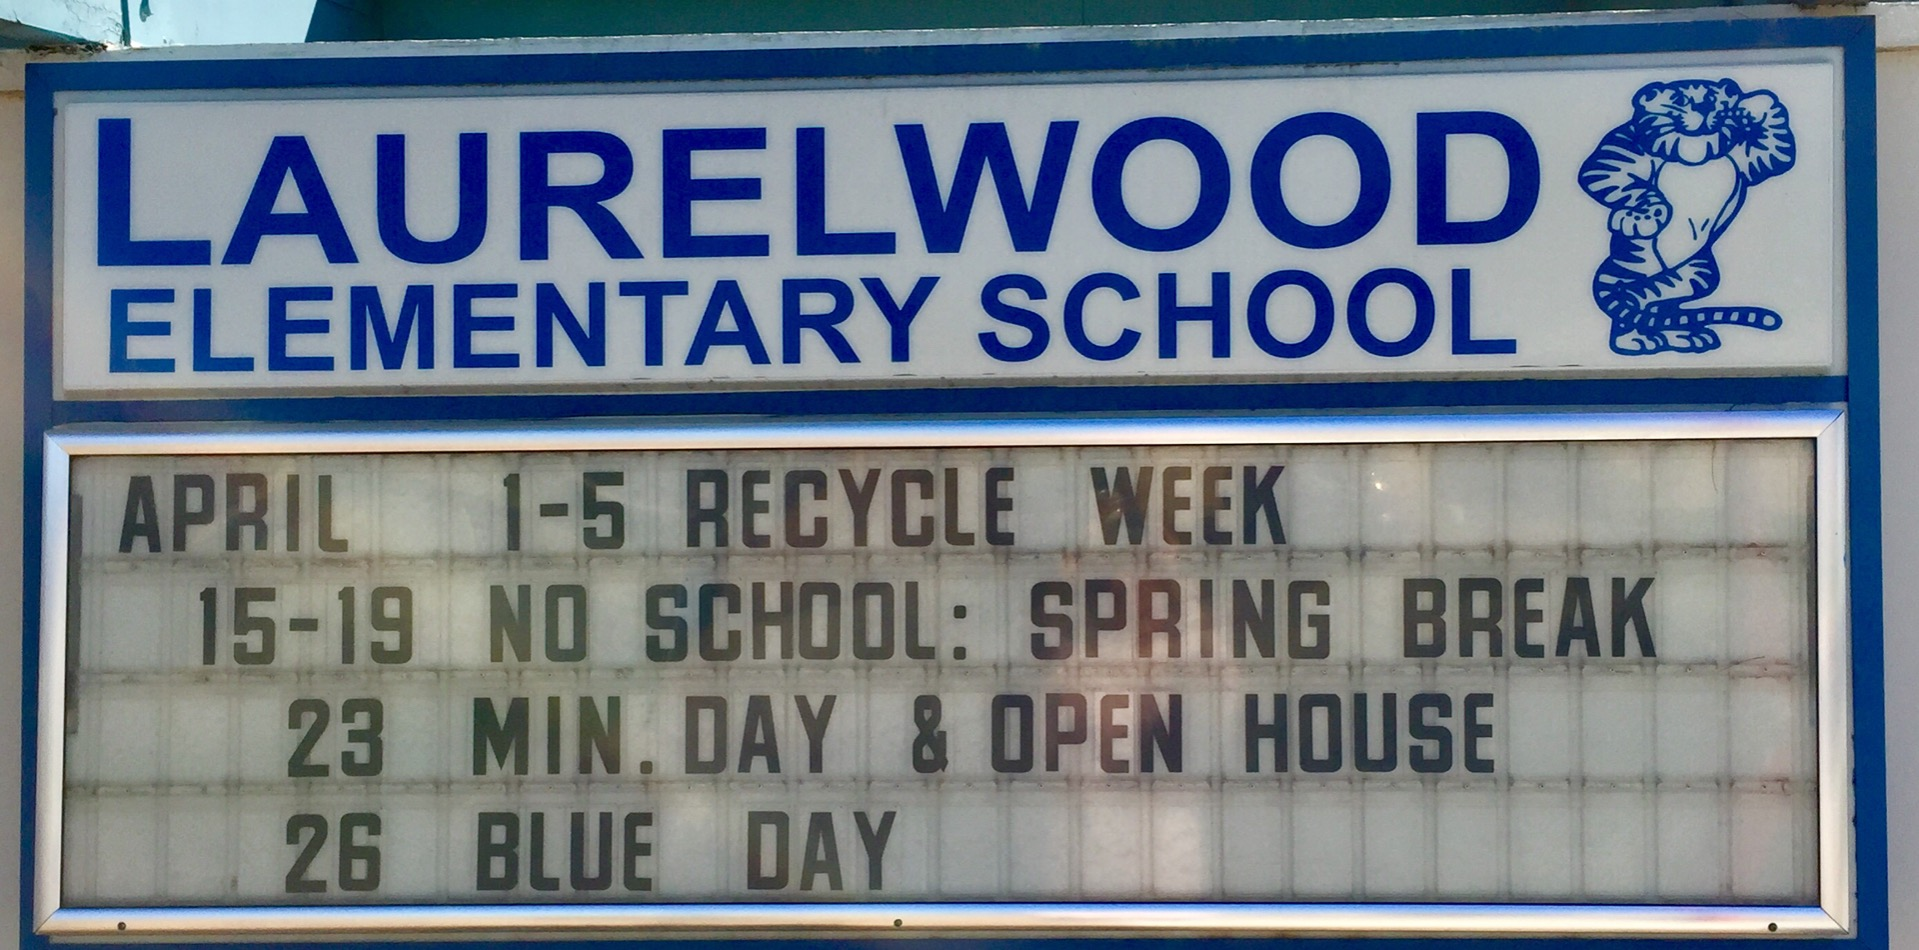 school's marquee for April